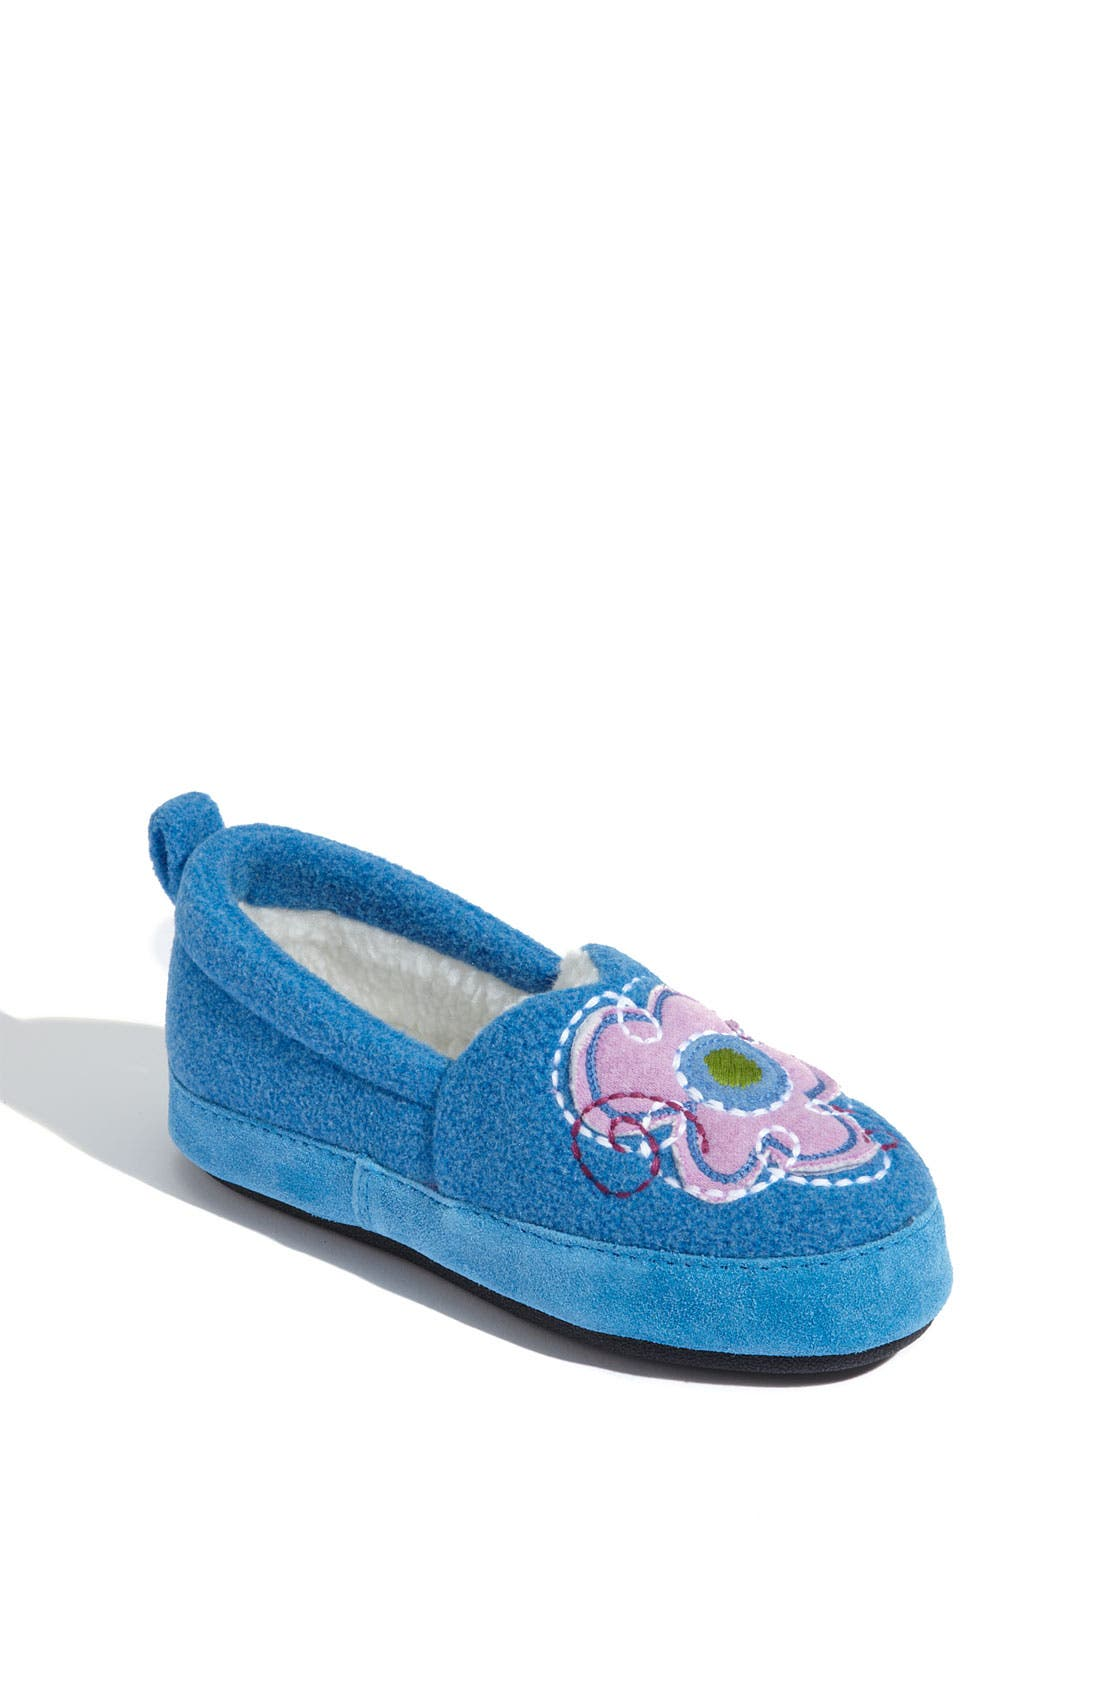 Main Image - Acorn 'Flower Power Moc' Slipper (Toddler, Little Kid & Big Kid)